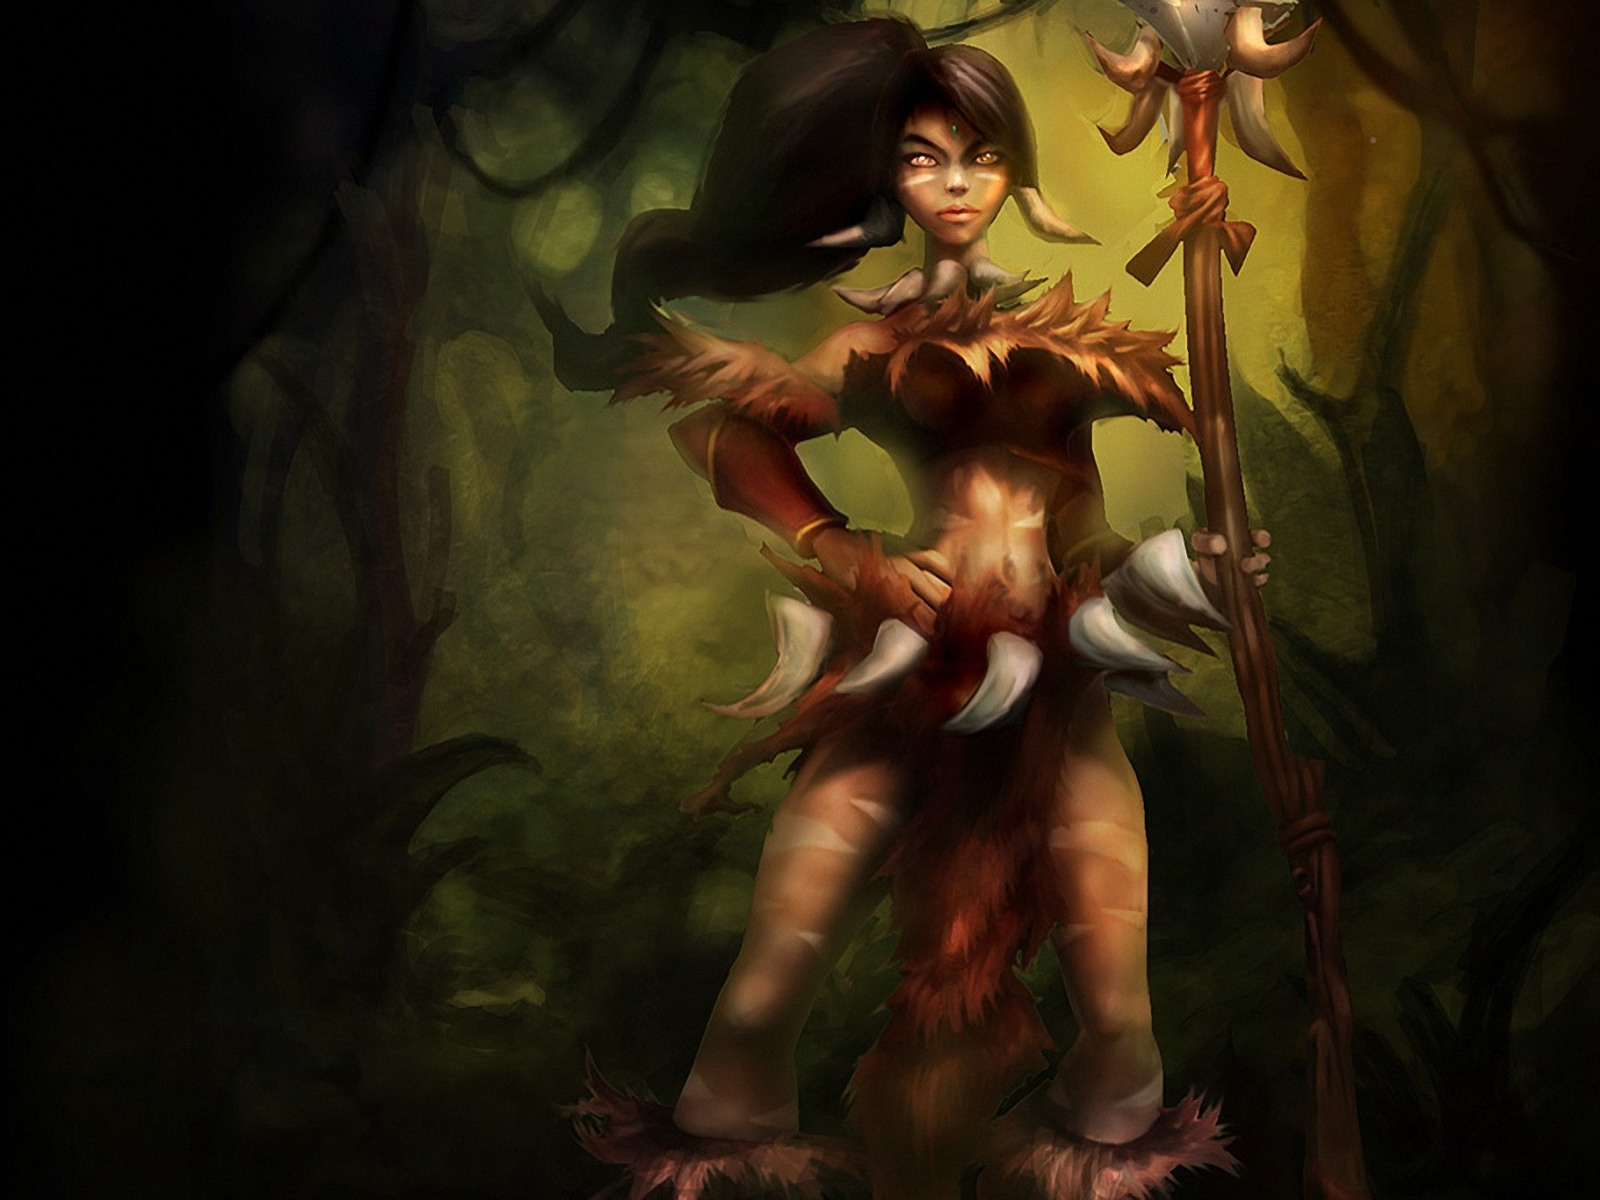 League of Legends Nidalee 1600x1200 Wallpapers 1600x1200 Wallpapers 1600x1200